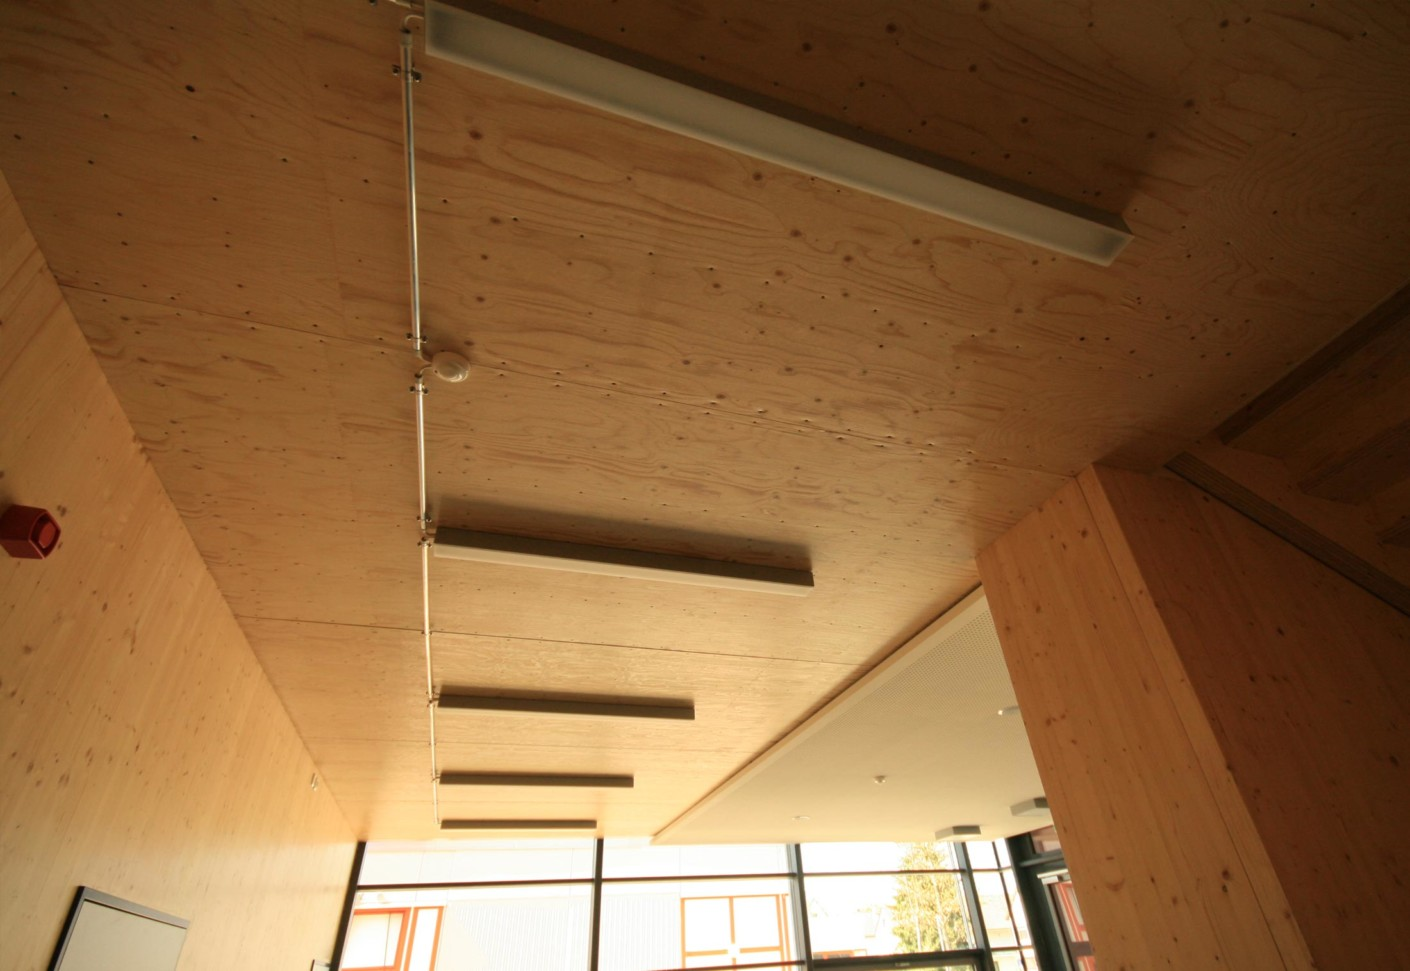 Interior Wall Wood Finishes : Interior finishes einhardschule seligenstadt by mets?